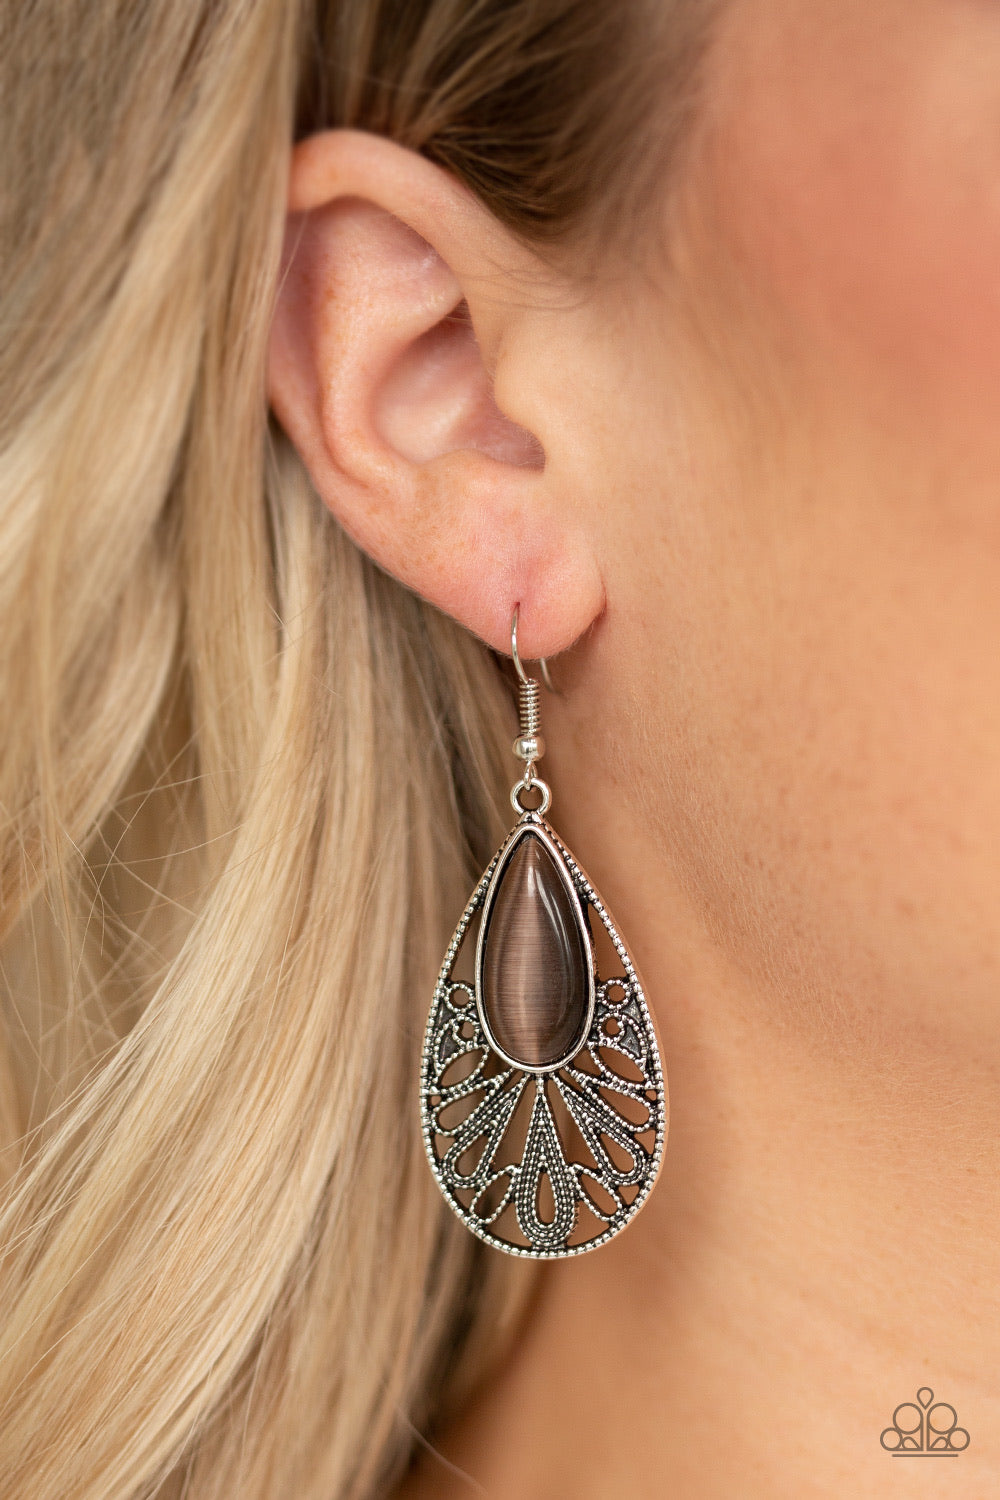 Paparazzi Jewelry Earrings Glowing Tranquility - Brown